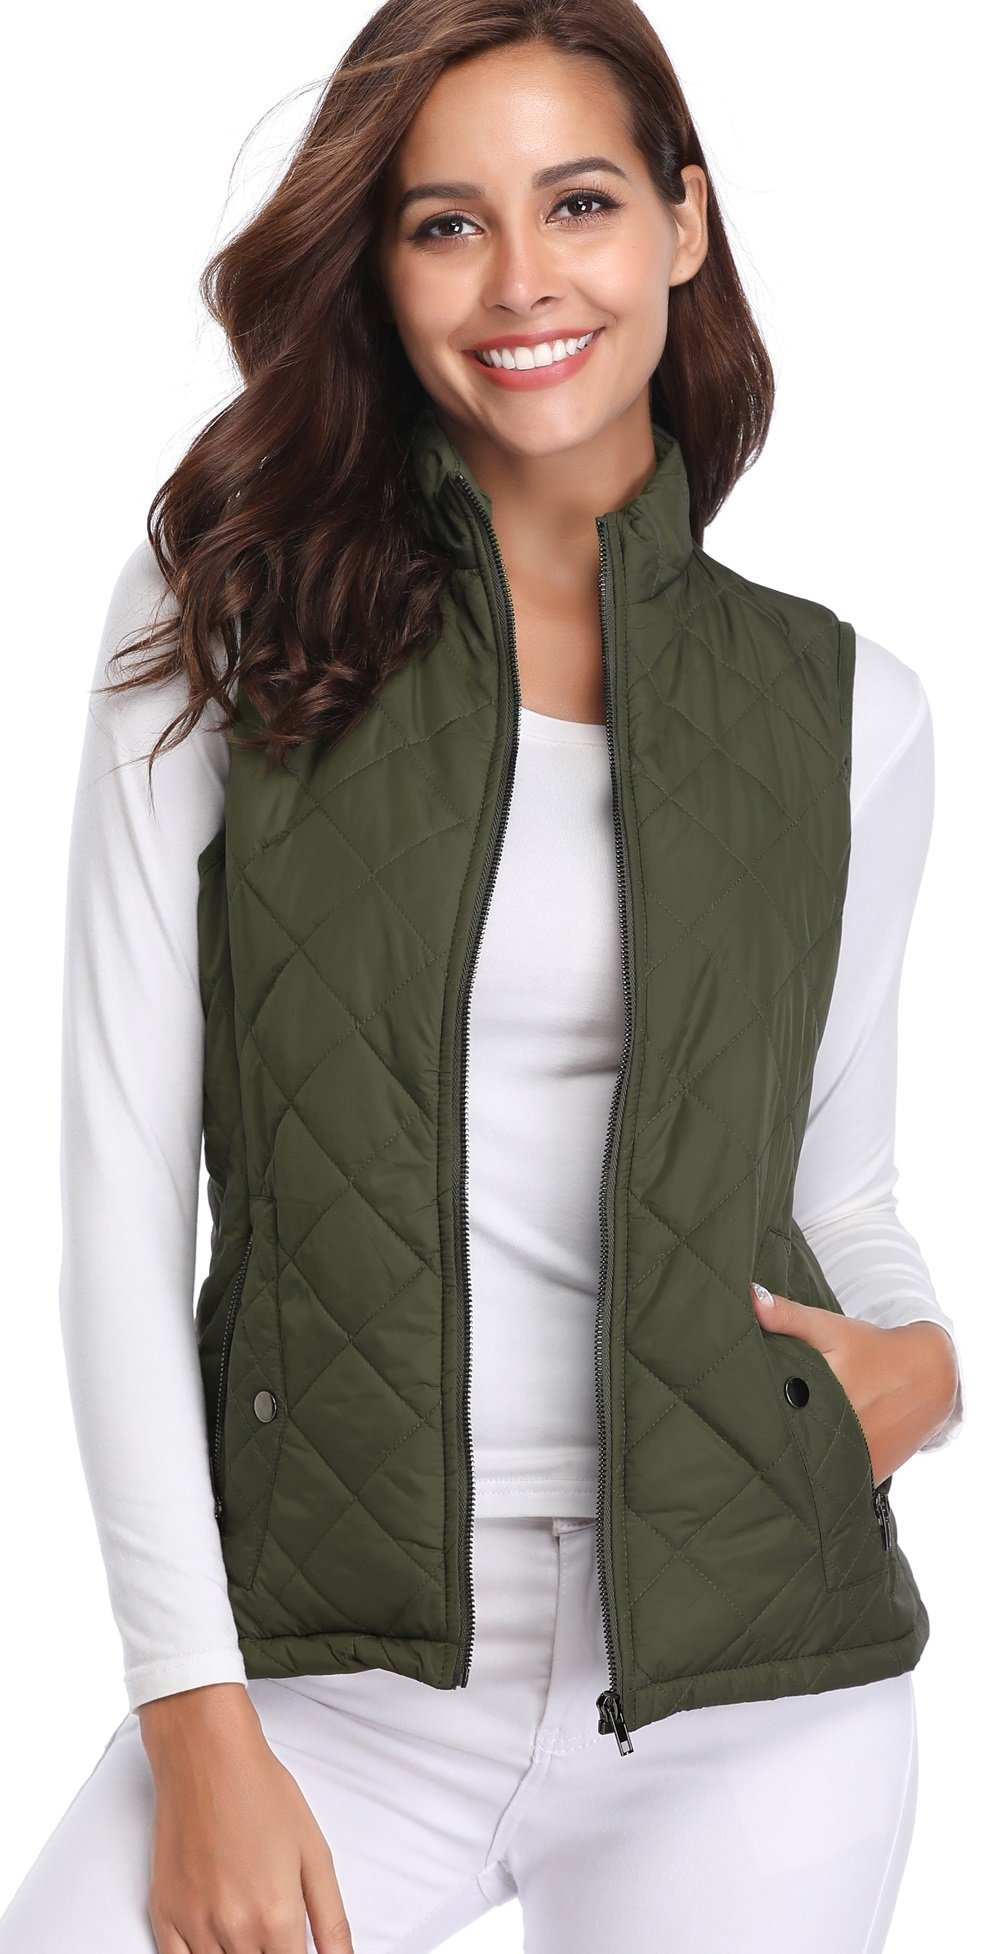 Argstar Women's Stand Collar Lightweight Padded Zip Vest Quilted Gilet,Green,Large (US 12-14)